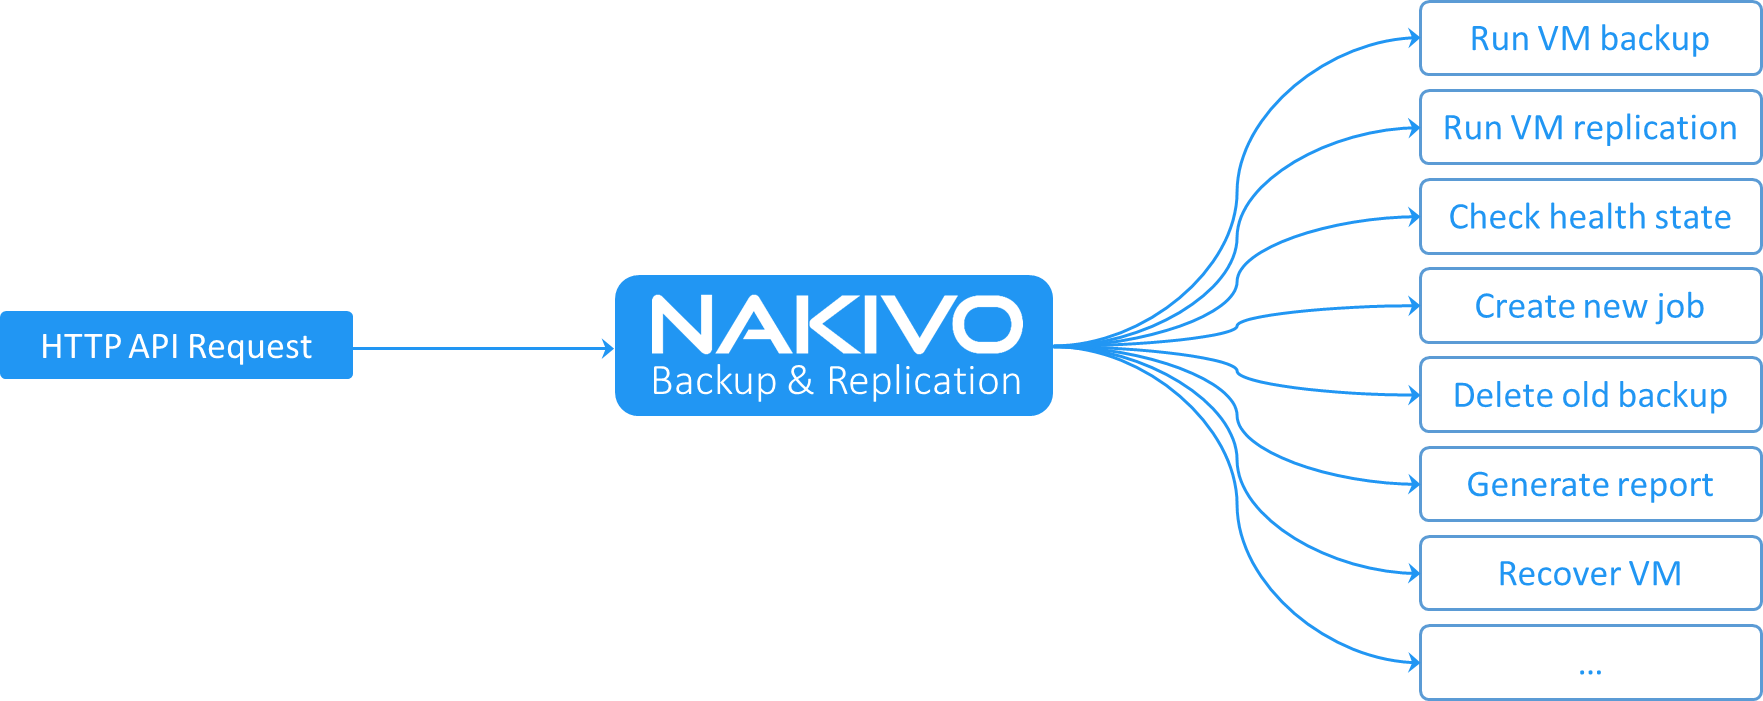 NAKIVO Backup & Replication HTTPS API for Automation